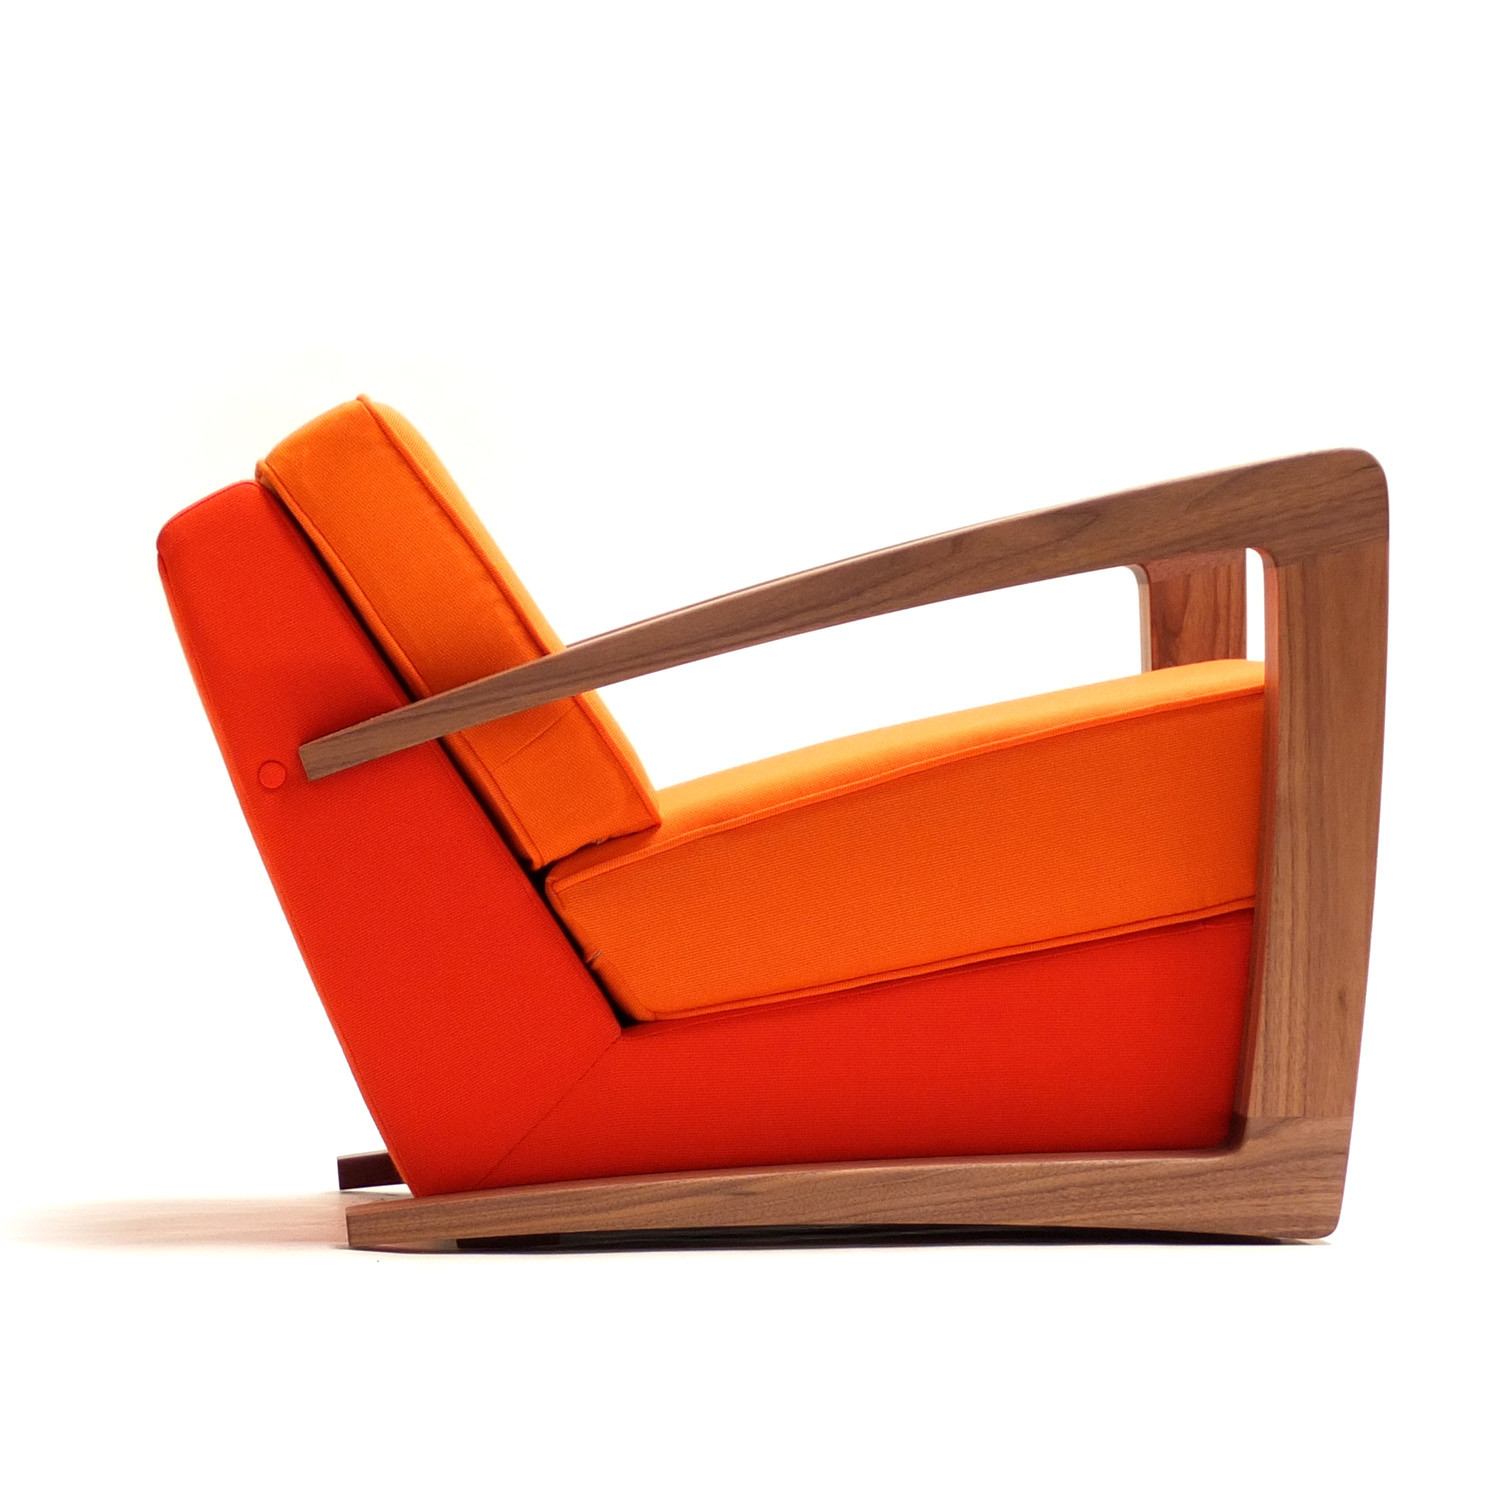 Kustom Lounge Chair Side Profile